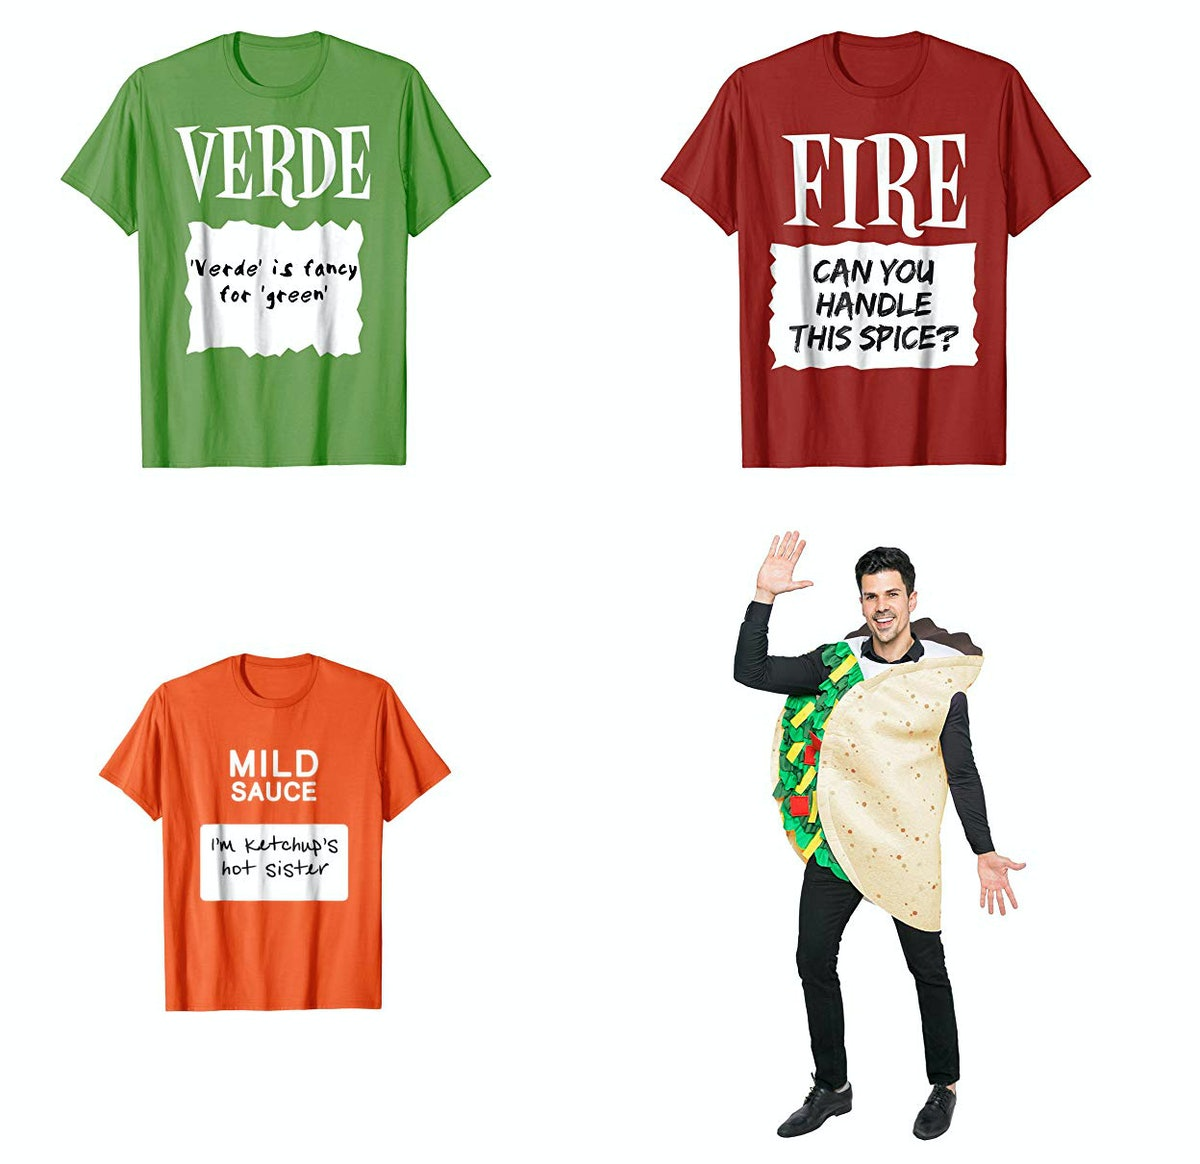 Hot Sauce Group T-Shirt + Taco Costume ($20 for each T-shirt, taco costume sold separately)